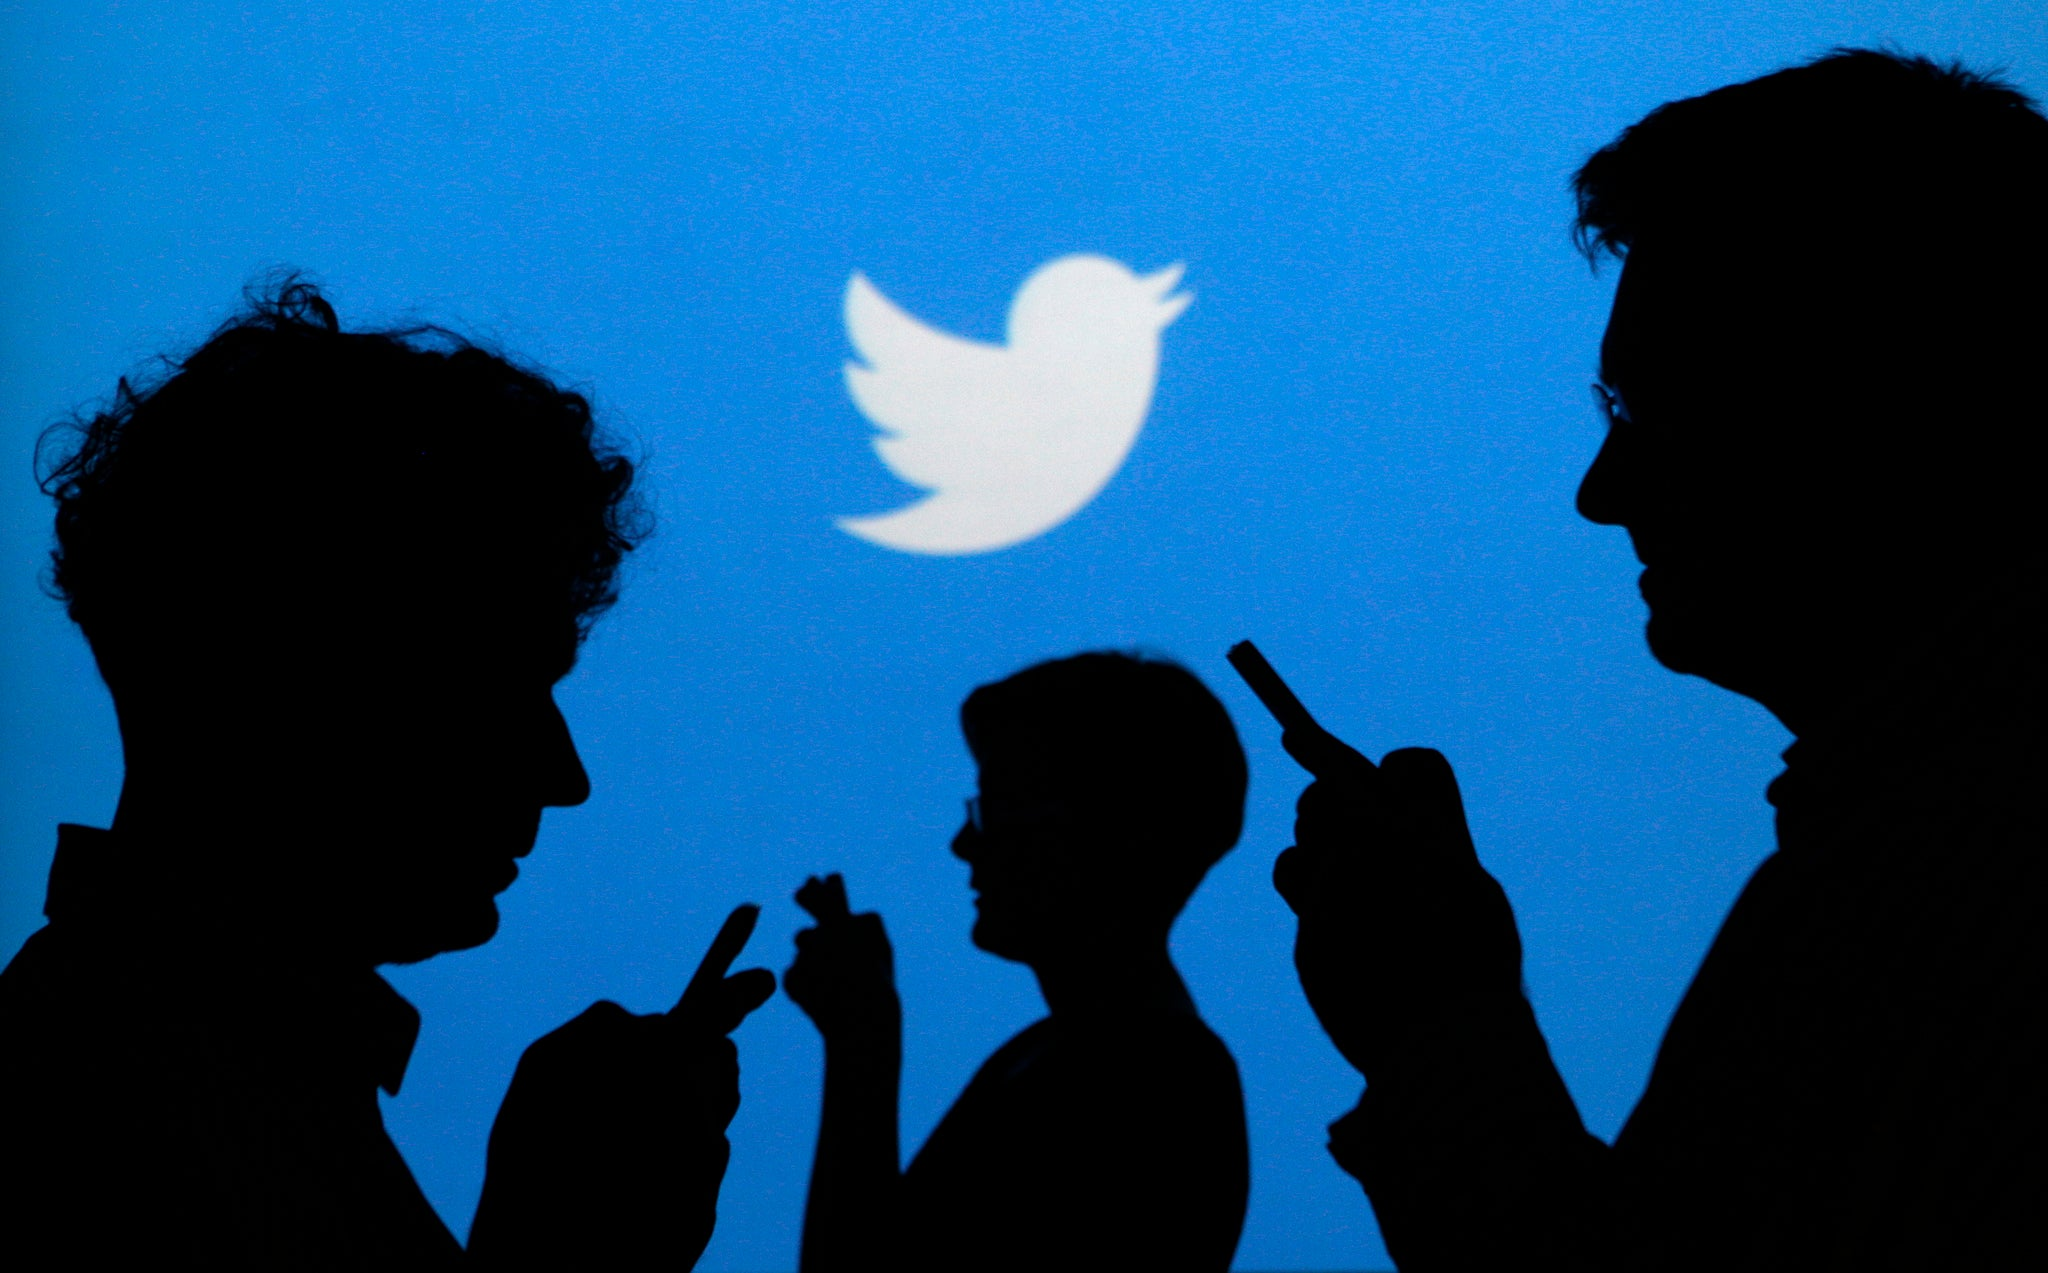 Twitter has just sided with politicians so they can hide what they